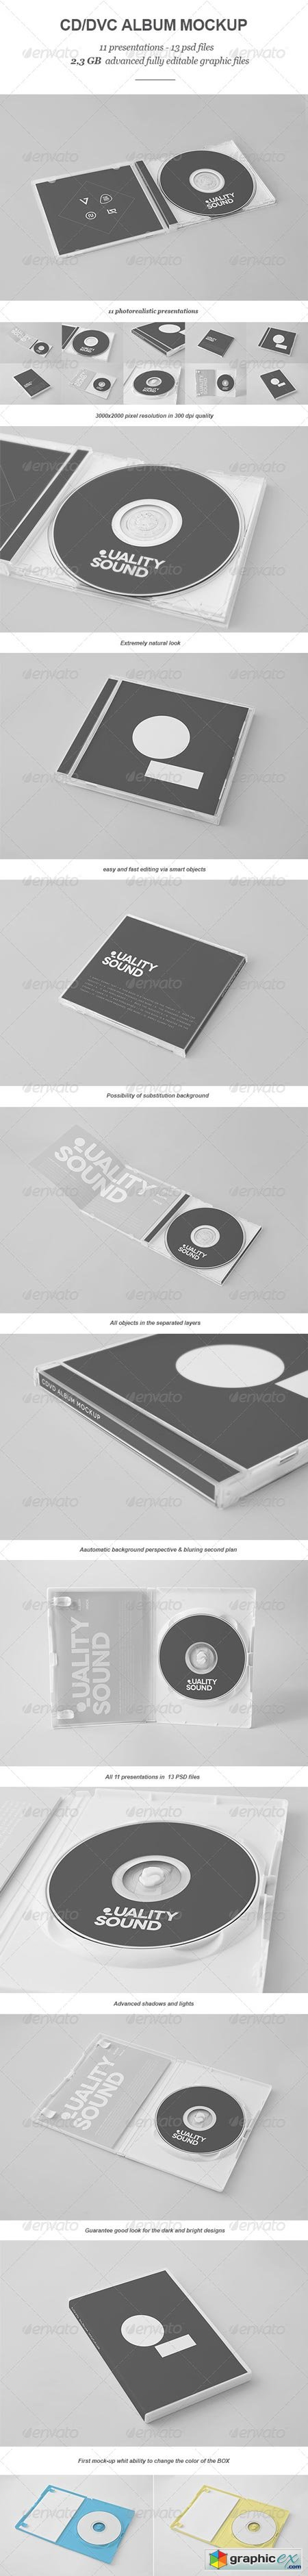 CD DVD Album Mock-up